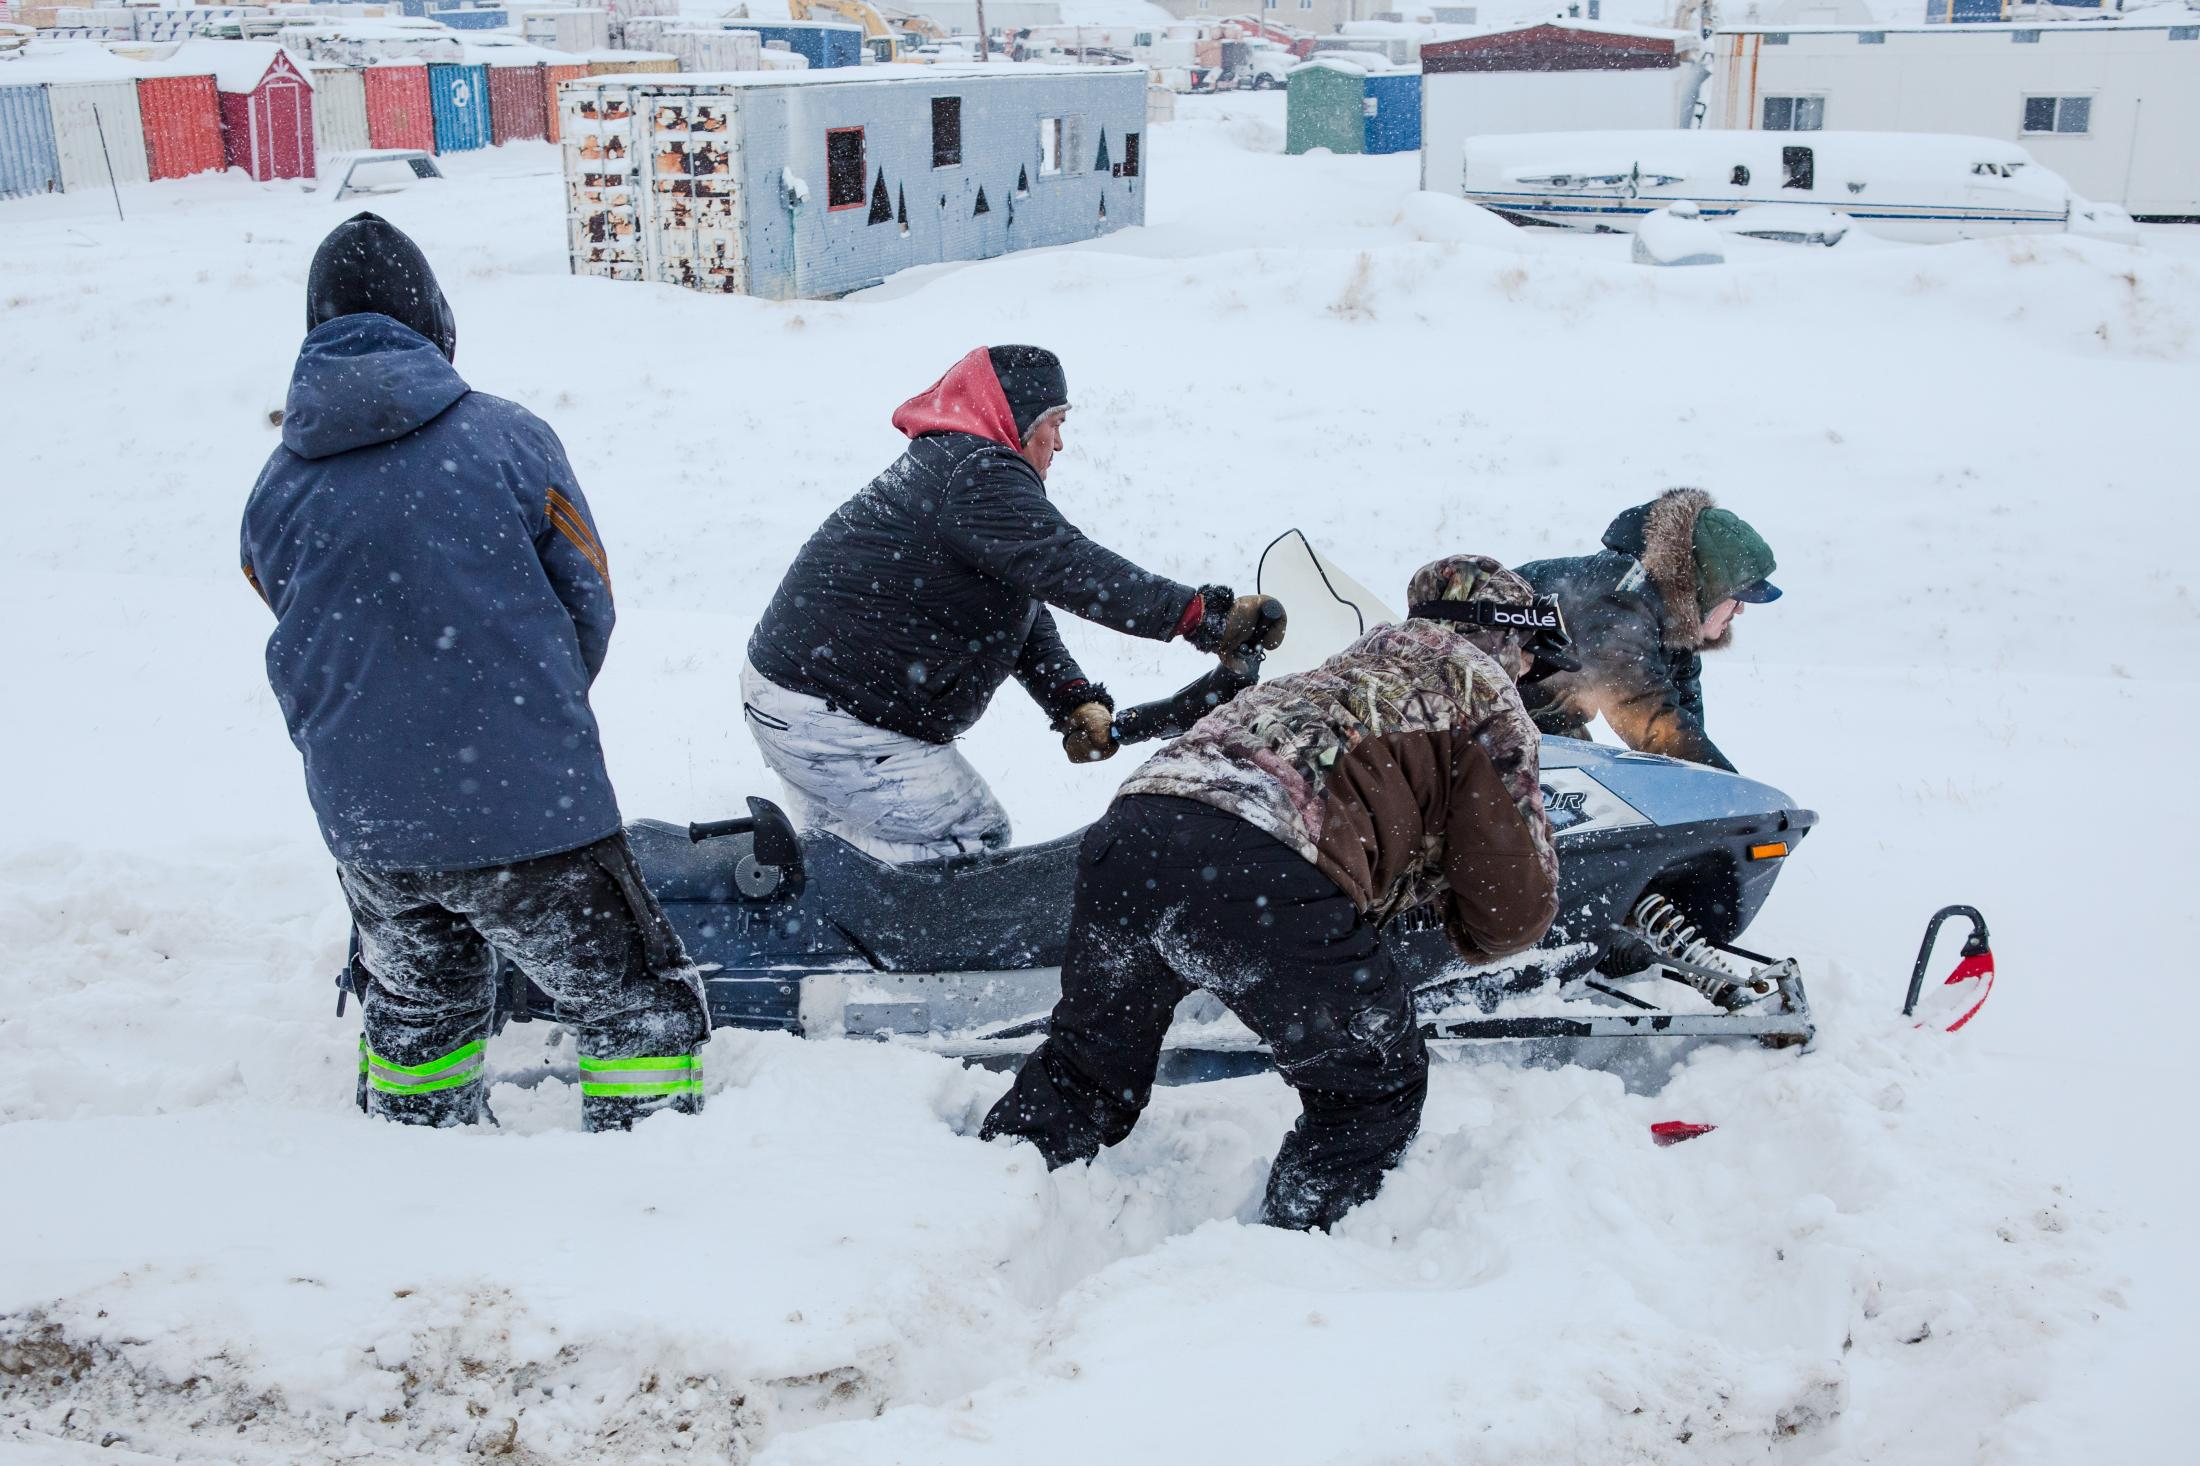 Shortly after a snow fall, the roads got icy and Simaniq veered his snowmobile into a ditch. It took a few pairs of hands to guide it out.